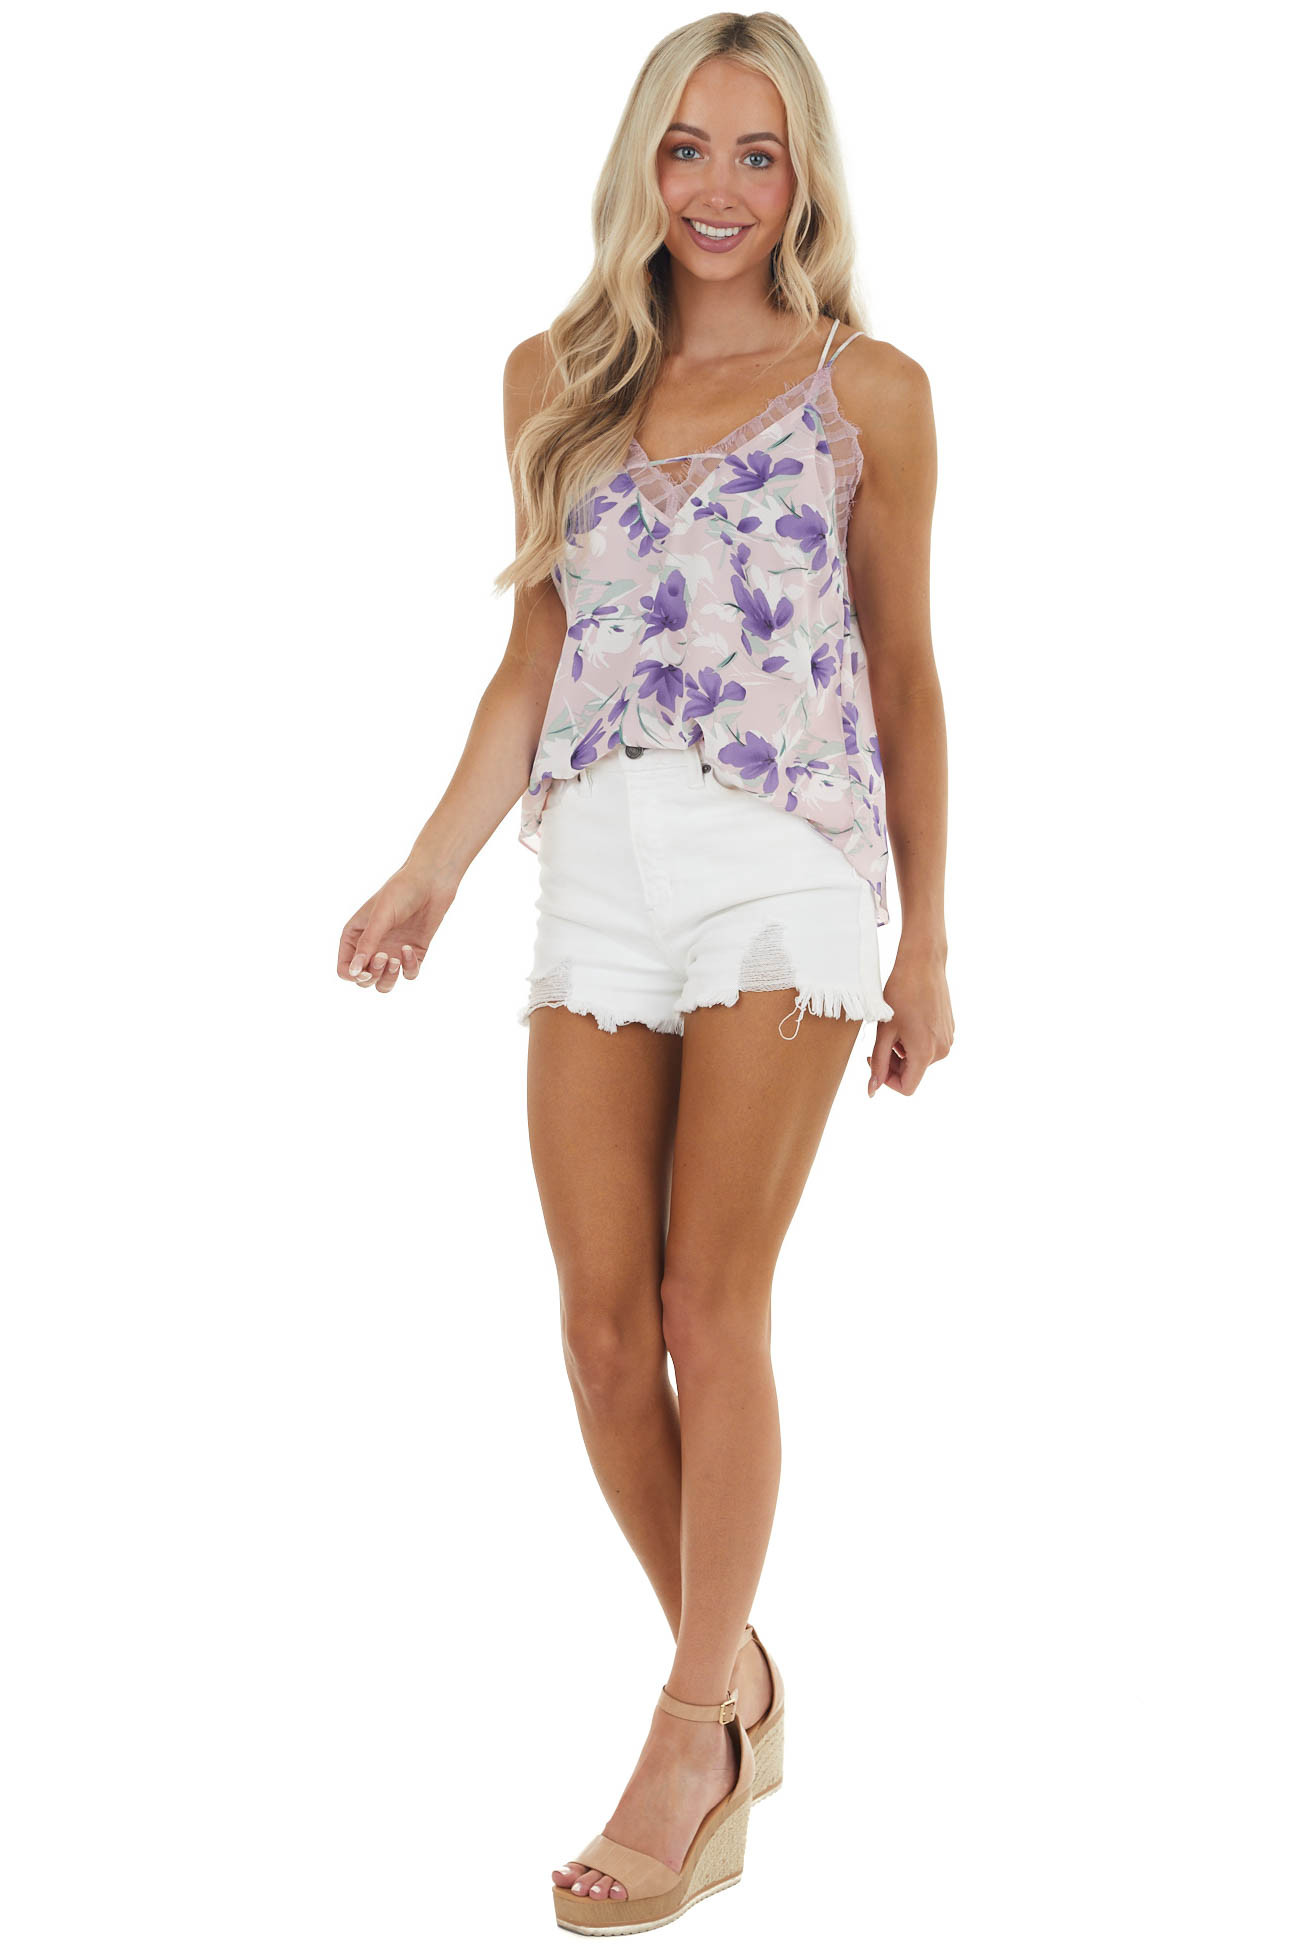 Dusty Blush Floral Dual Strap Tank Top with Lace Detail